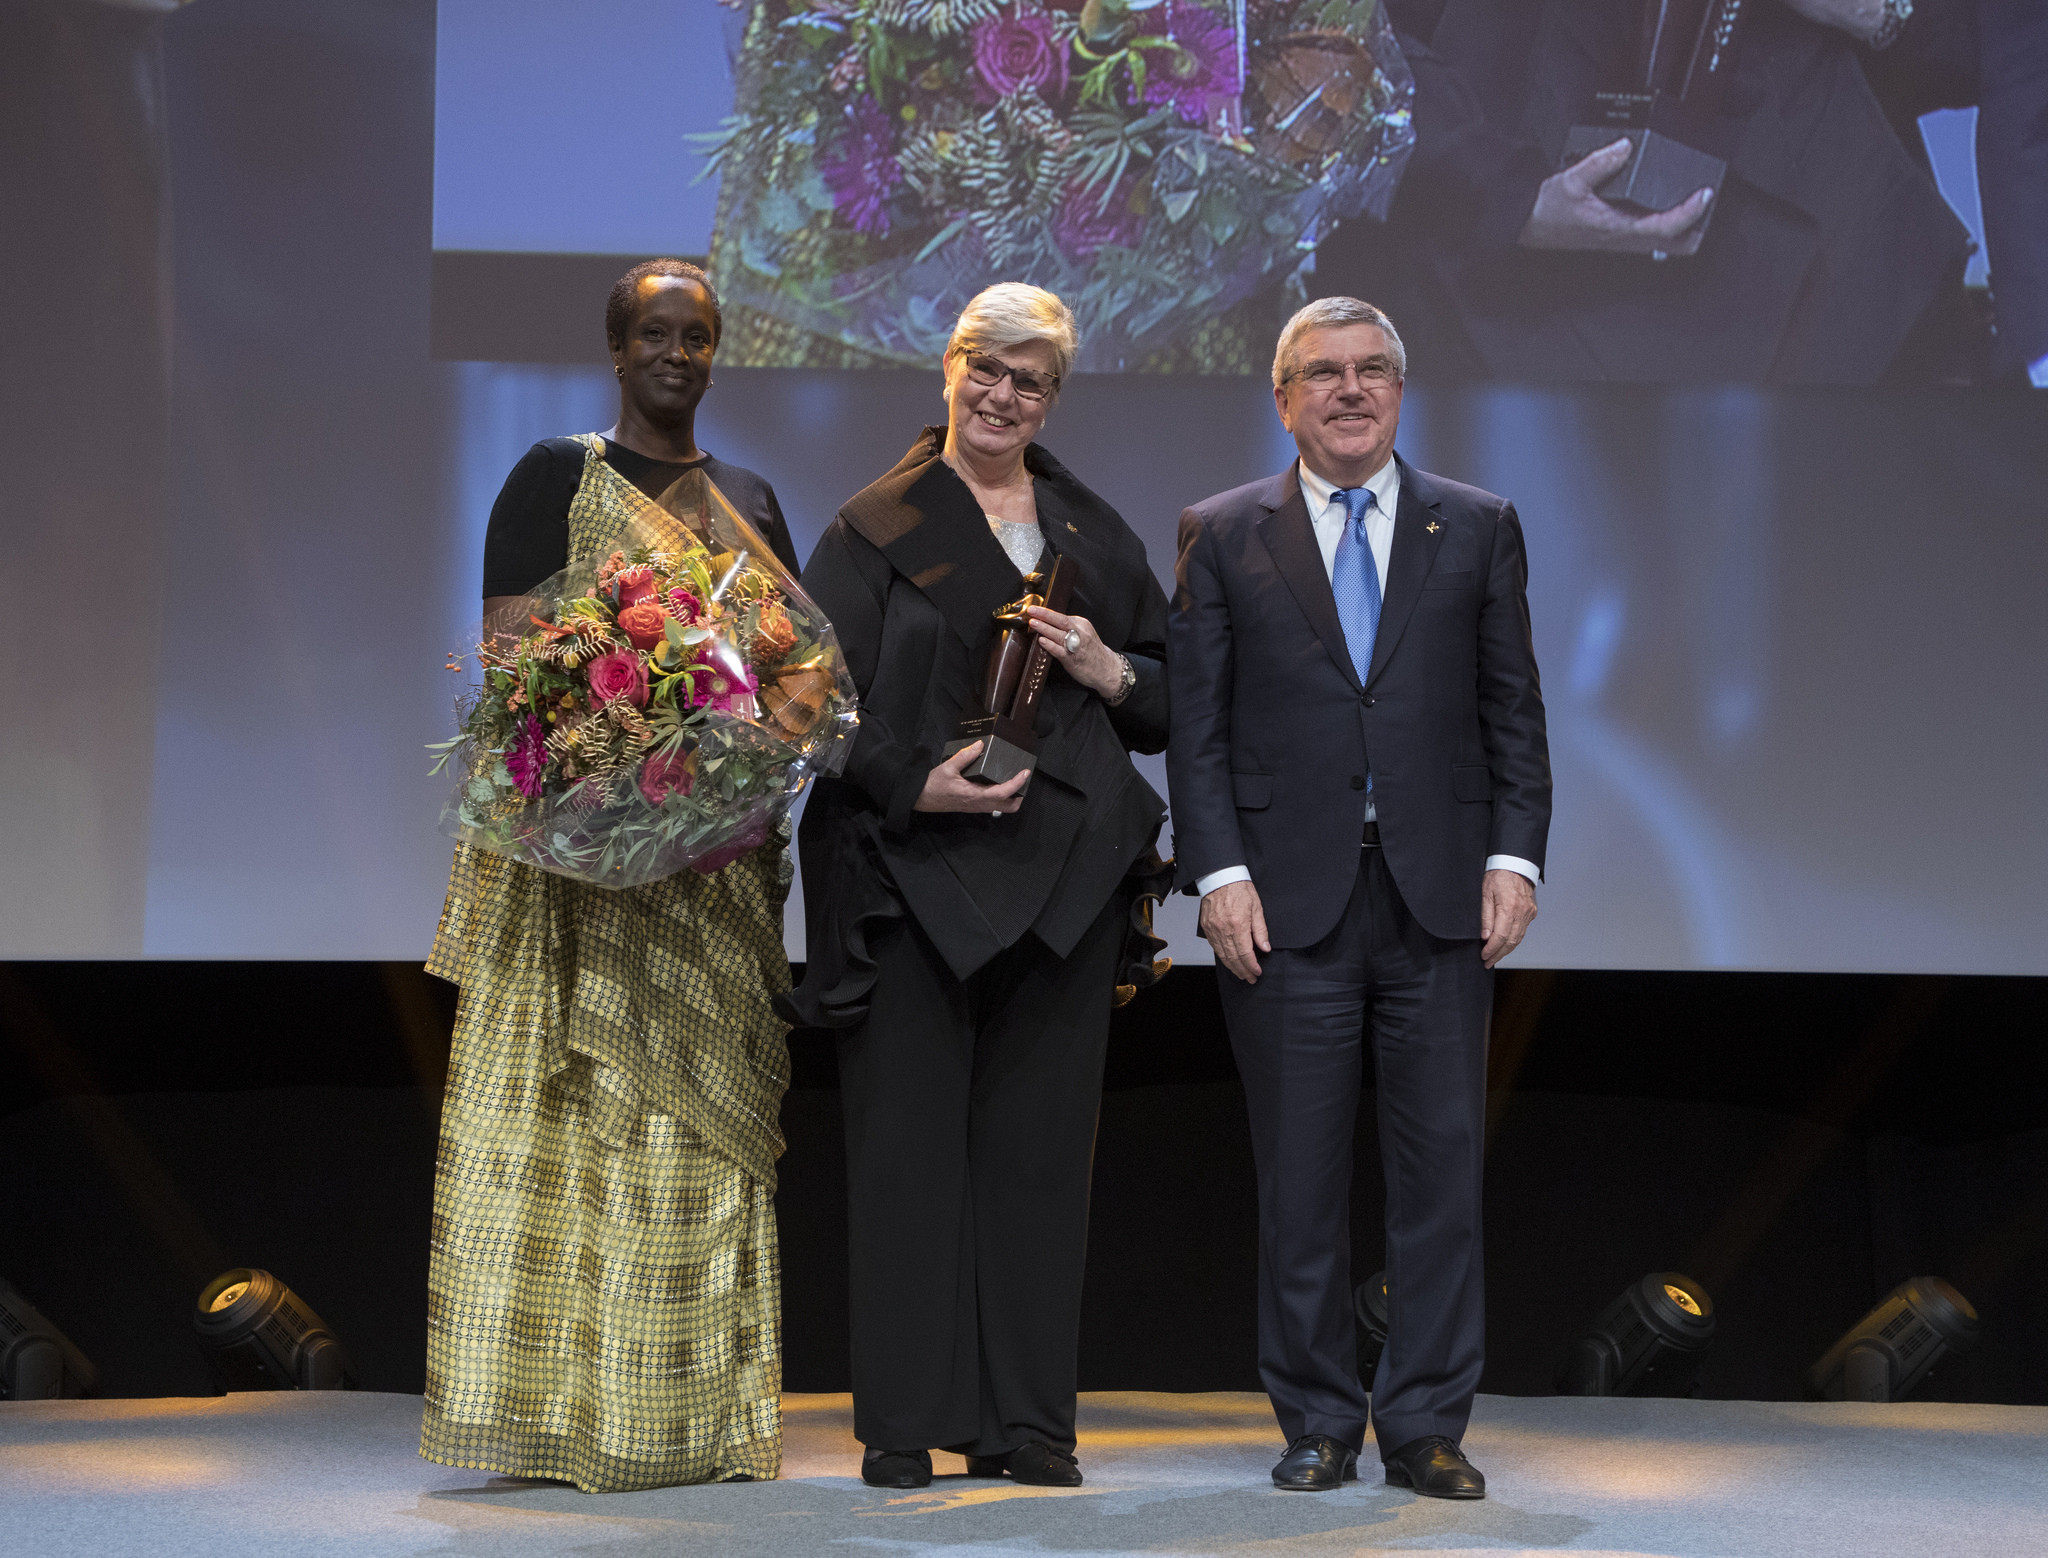 Birgitta Kervinen received the World Trophy at the Women in Sport Awards ©IOC/Flickr